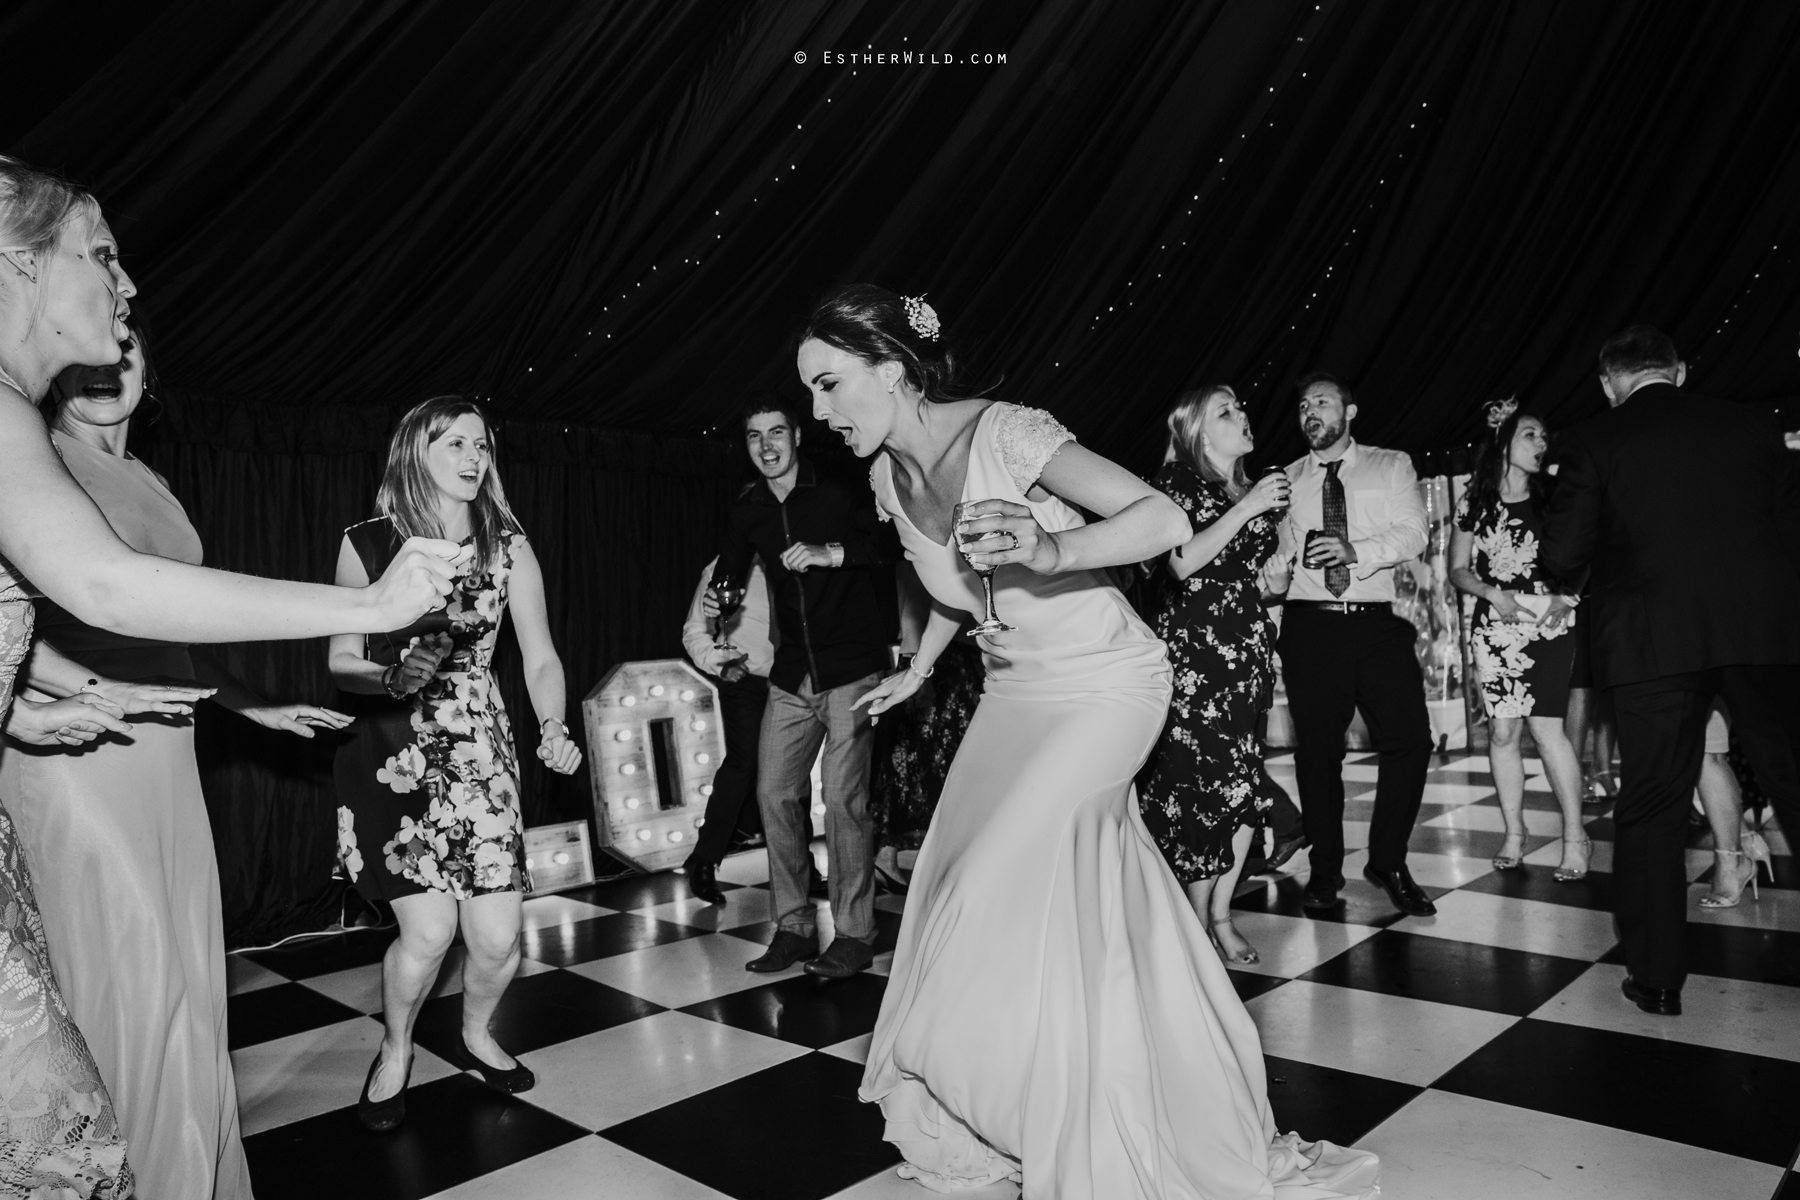 Wootton_Wedding_Copyright_Esther_Wild_Photographer_IMG_3409-2.jpg